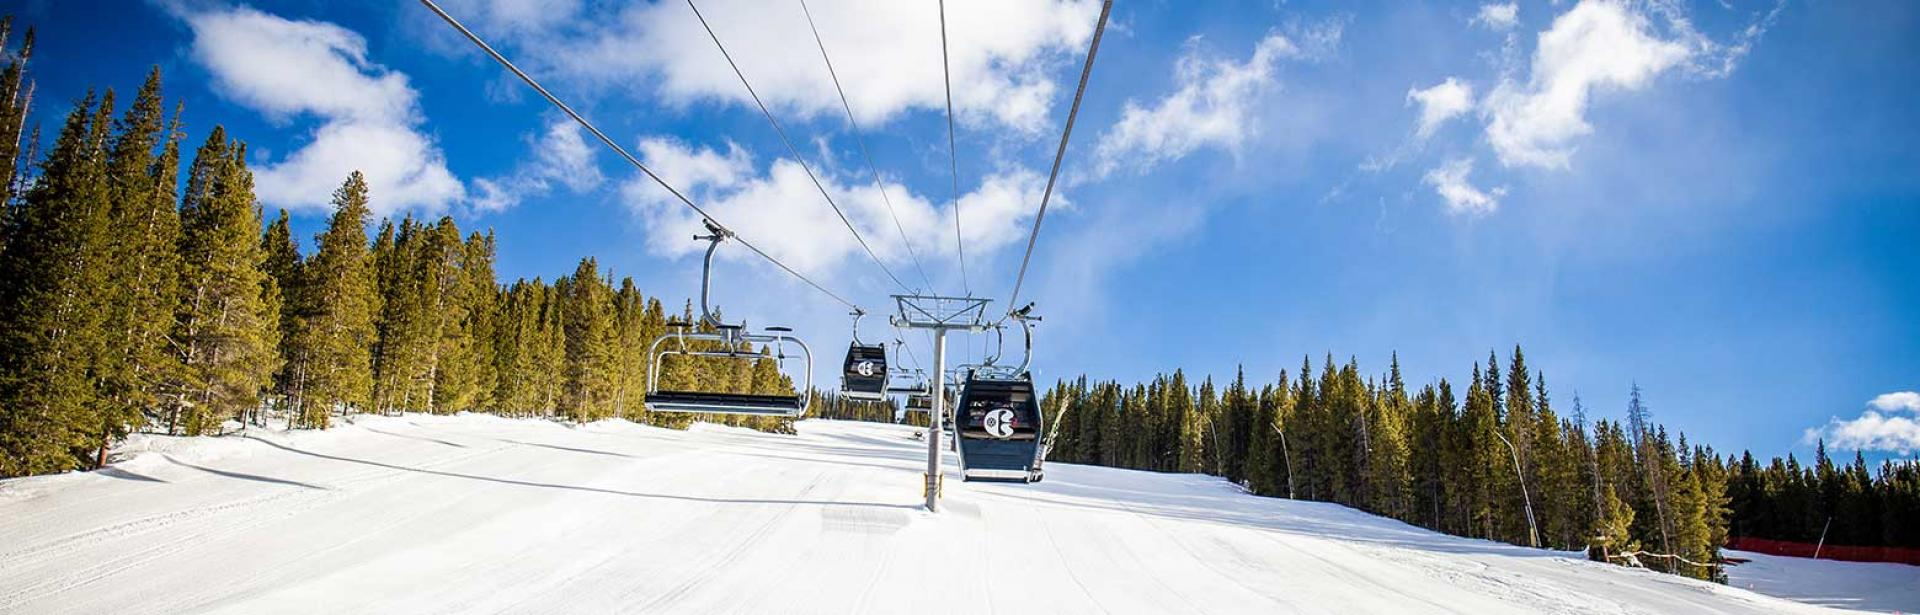 Christmas Village Ski Lift For Sale.Copper Mountain Lift Tickets